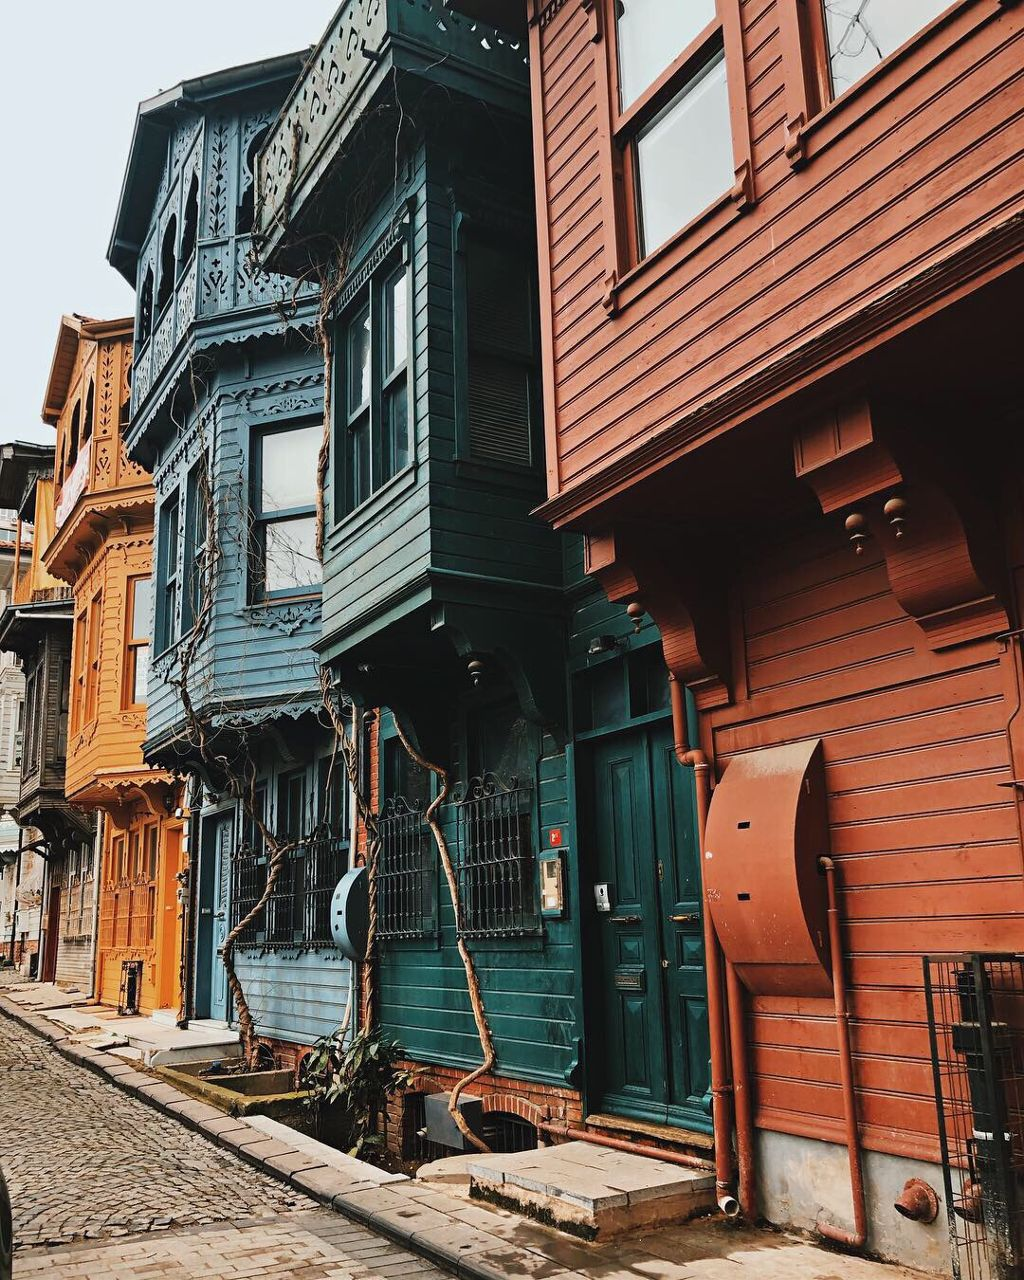 Streets 🧡  #photography #photographer #picoftheday #picsart #istanbul #turkey #travel #colors #myedit #travelphotography #beautifulday #streets #freetoedit